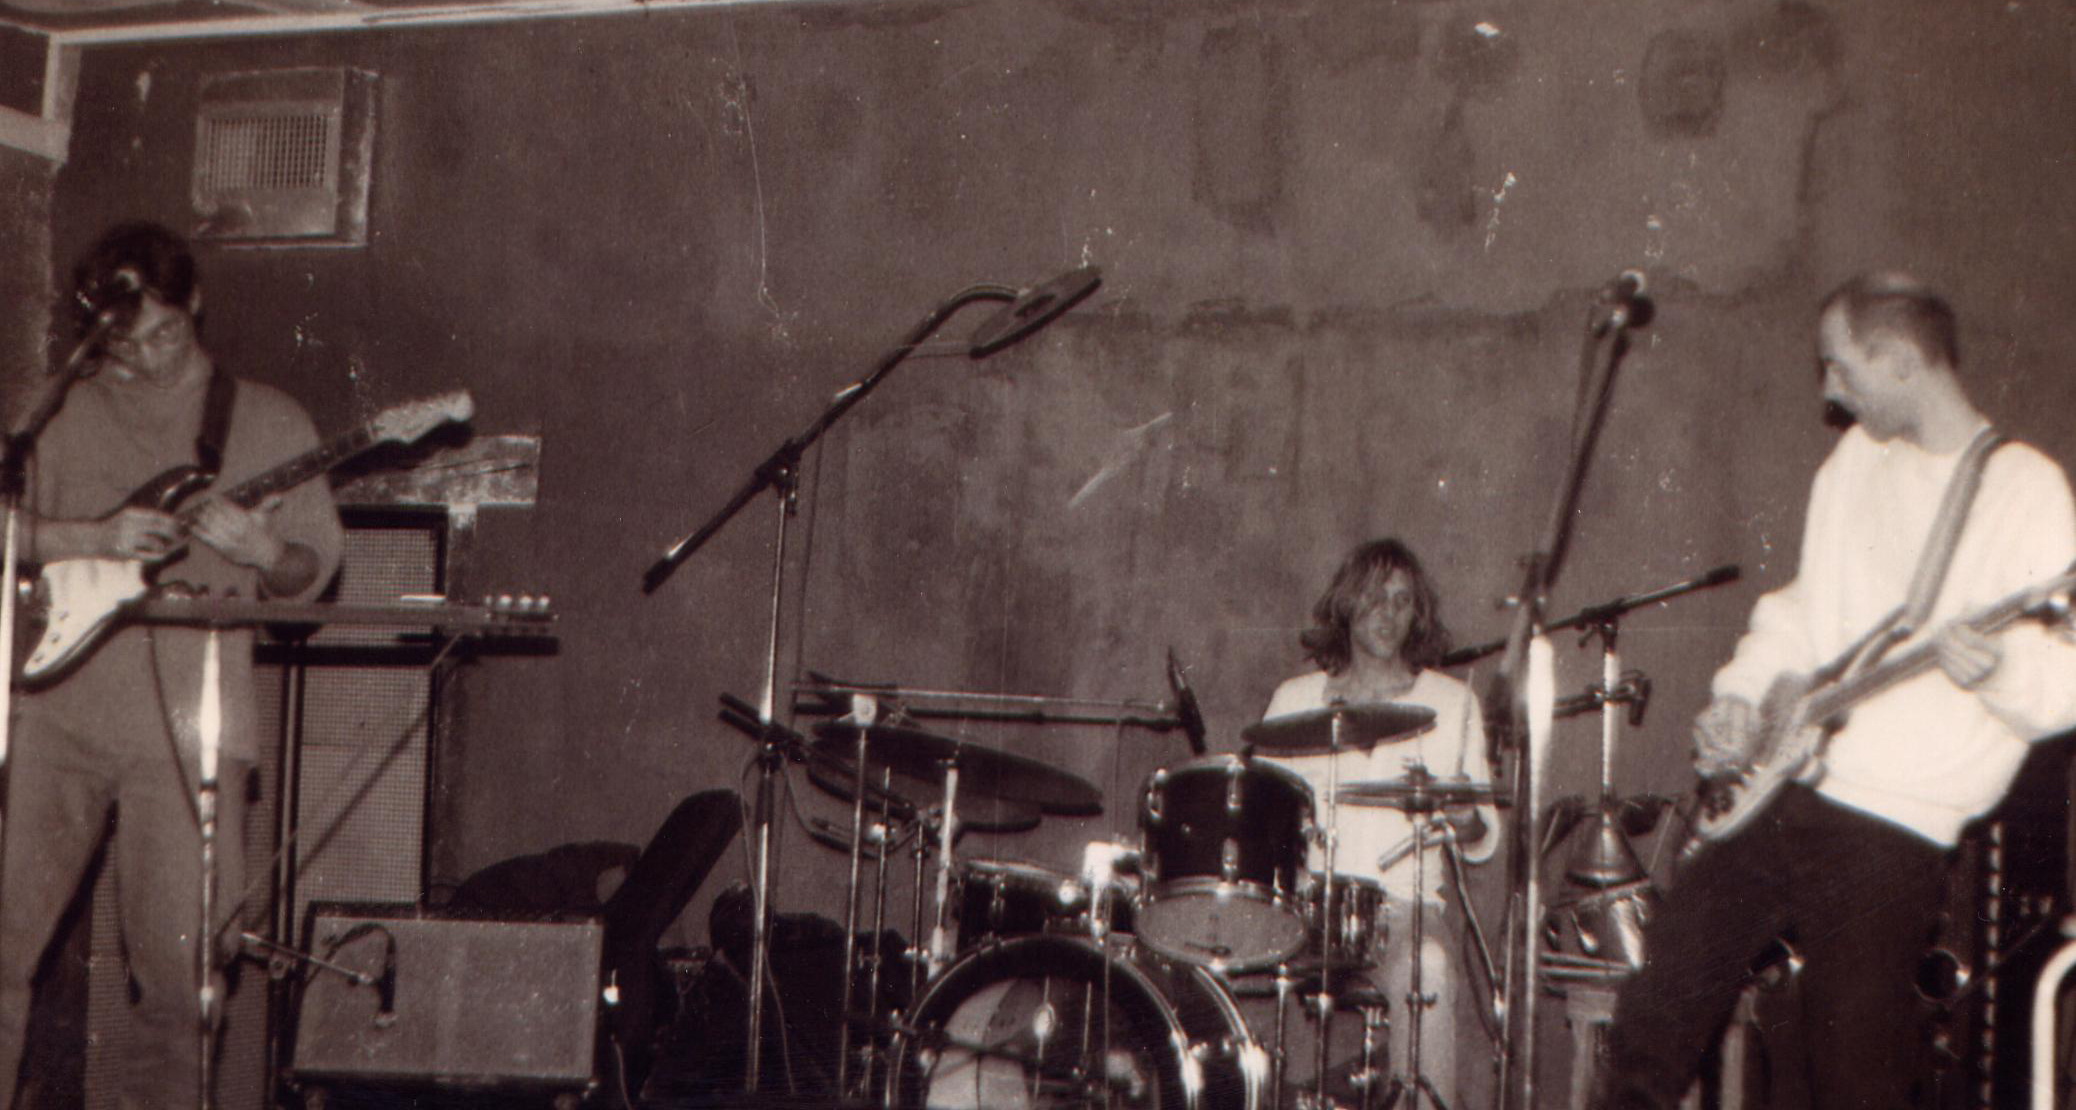 Mike Johnson playing guitar with Dave Kerman on drums and Bob Drake on bass